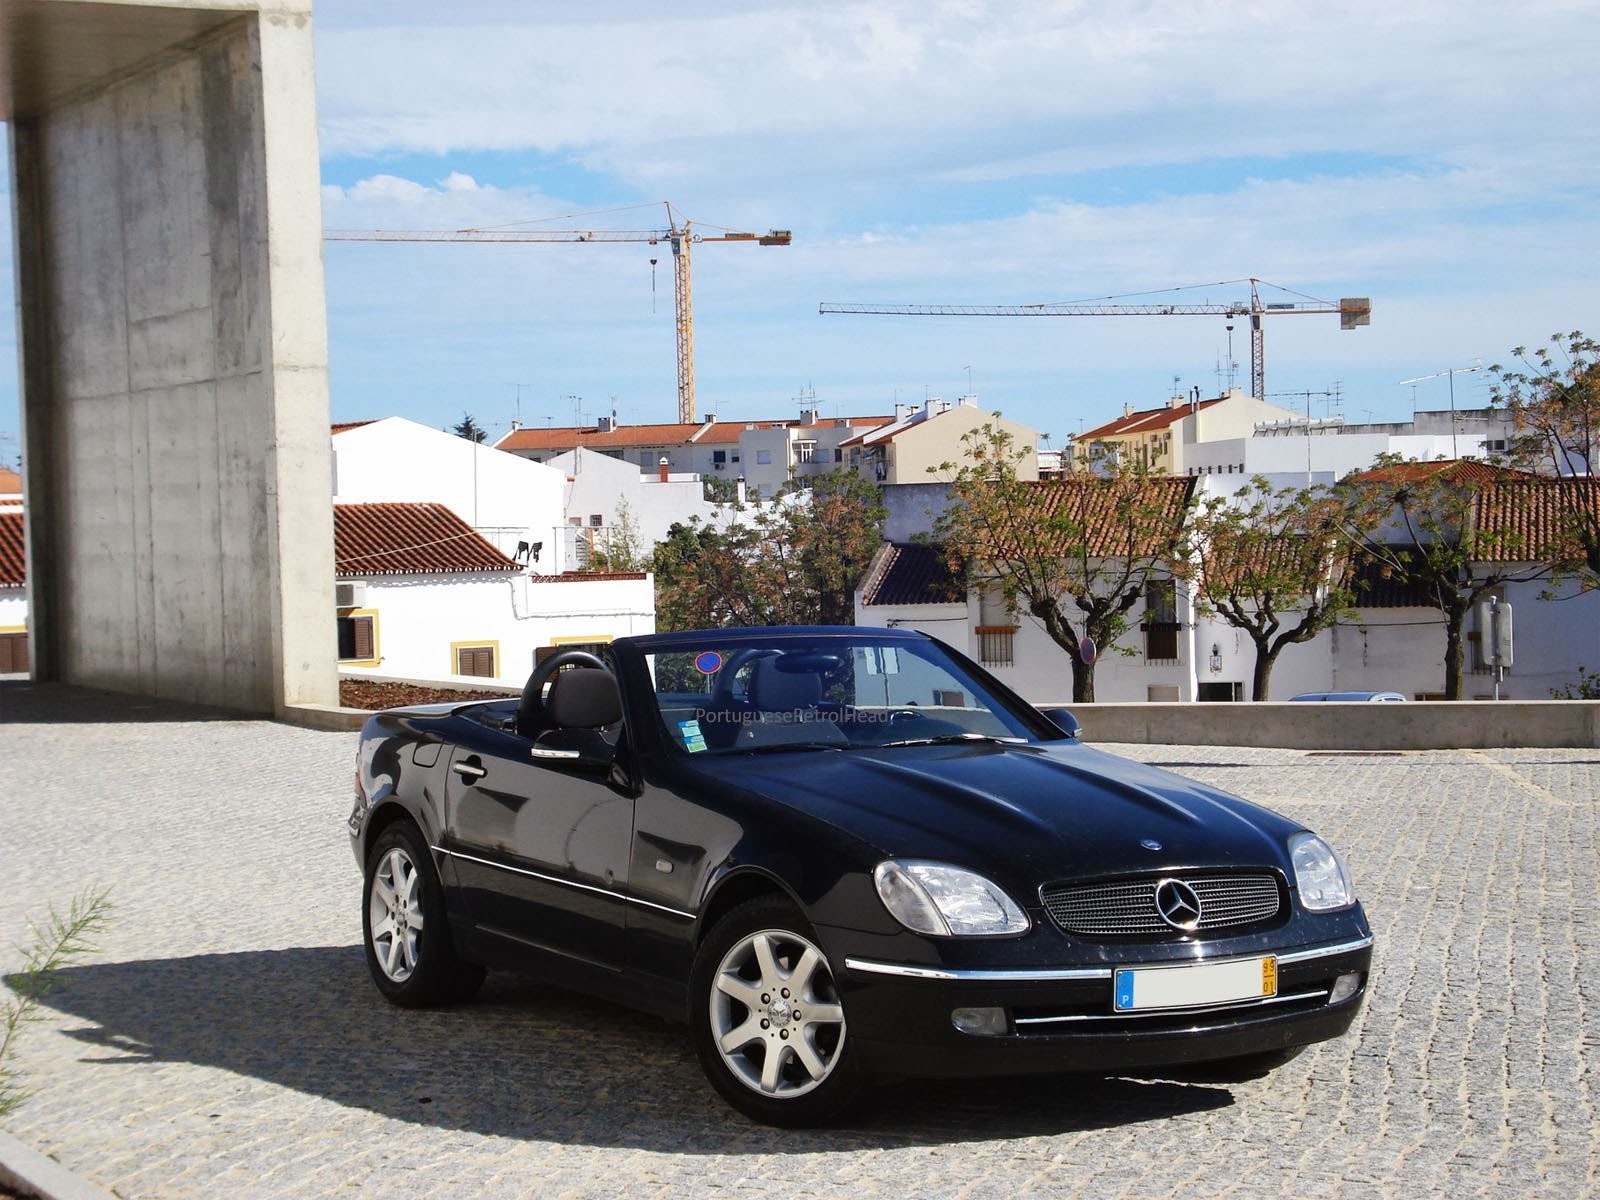 portuguese petrol head driven mercedes benz slk 200 1999 r170. Black Bedroom Furniture Sets. Home Design Ideas